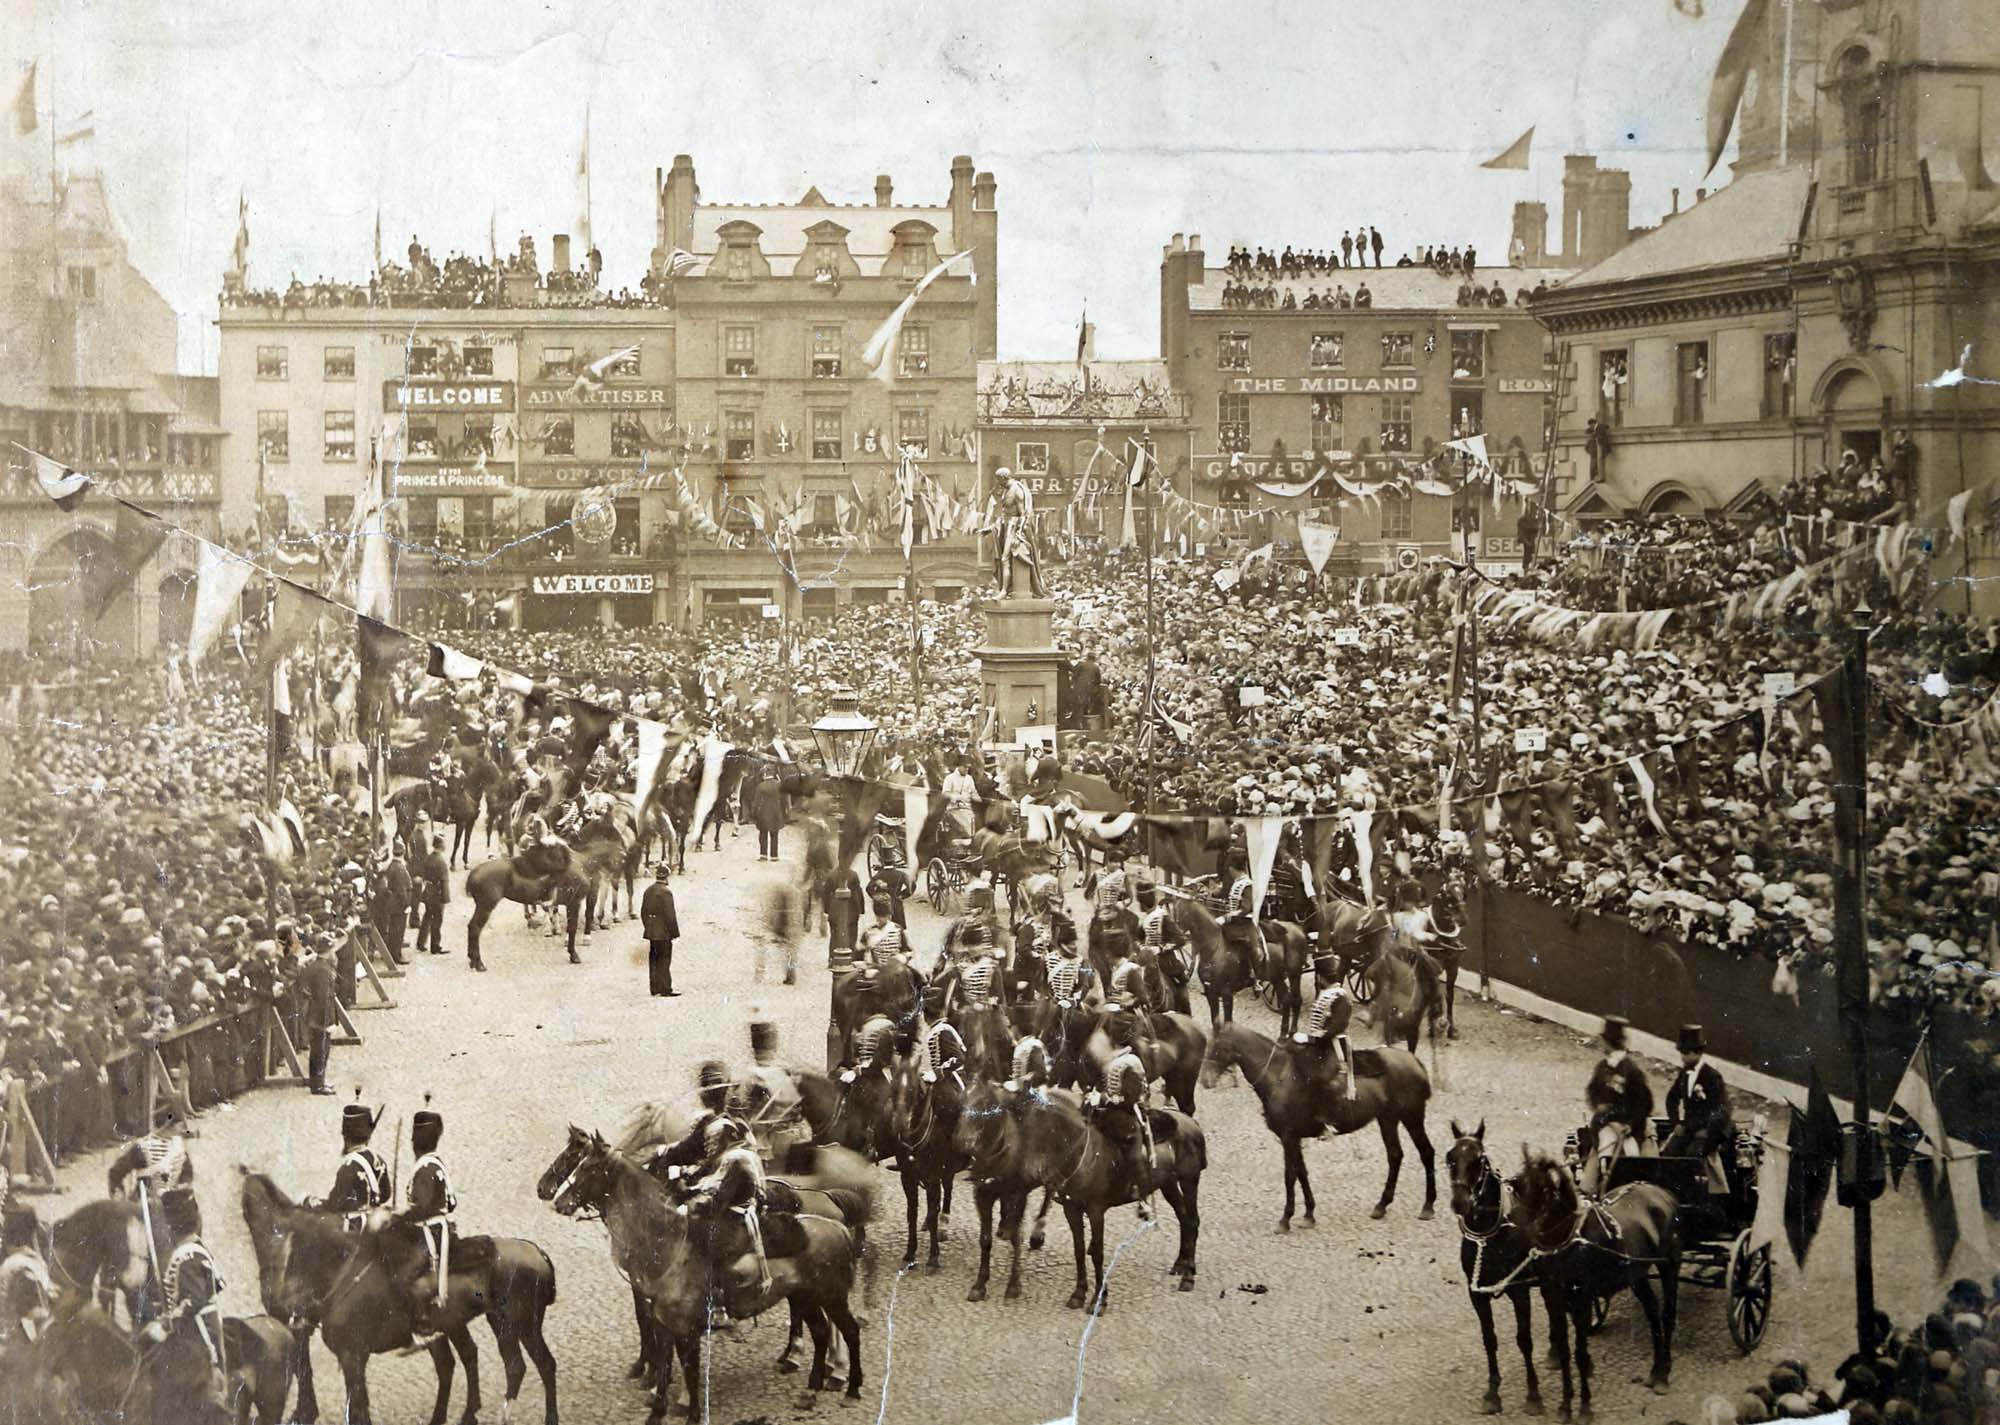 The Prince and Princess of Wales and  Princess of Wales passing by crowds in Leicester Market on the way to open Abbey Park, 1881 - Leicestershire Record Office